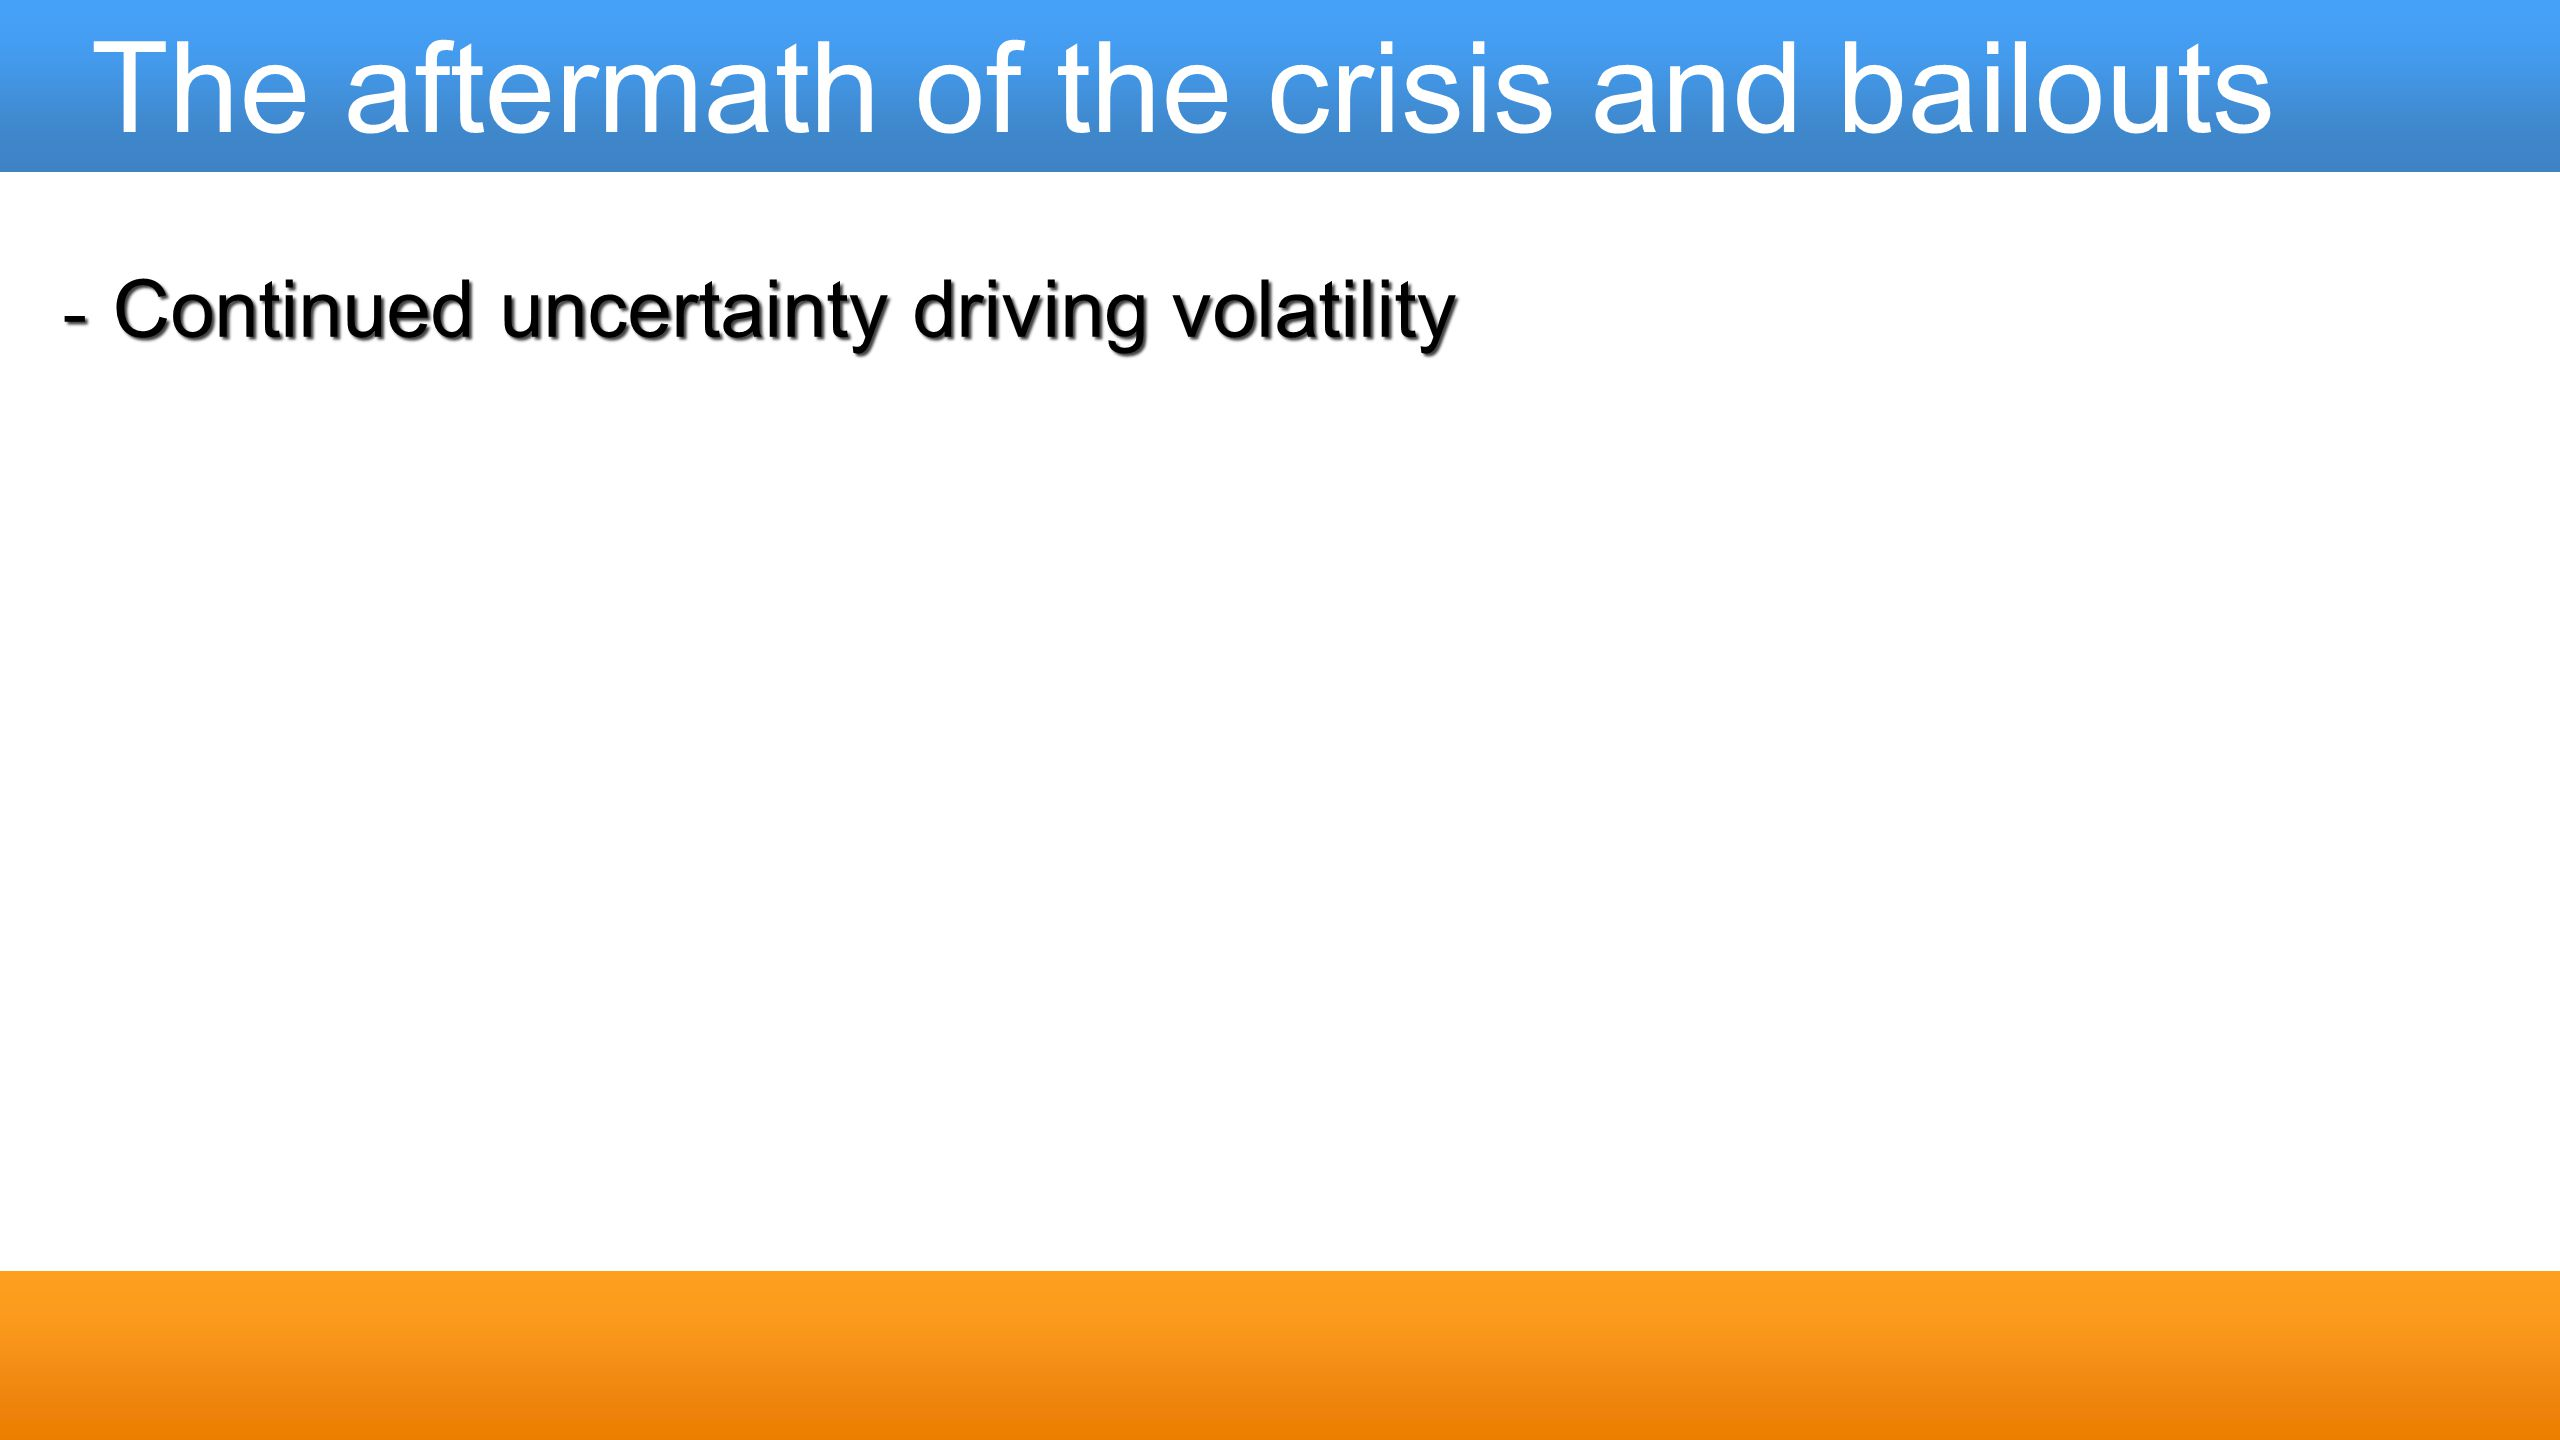 The aftermath of the crisis and bailouts - Continued uncertainty driving volatility